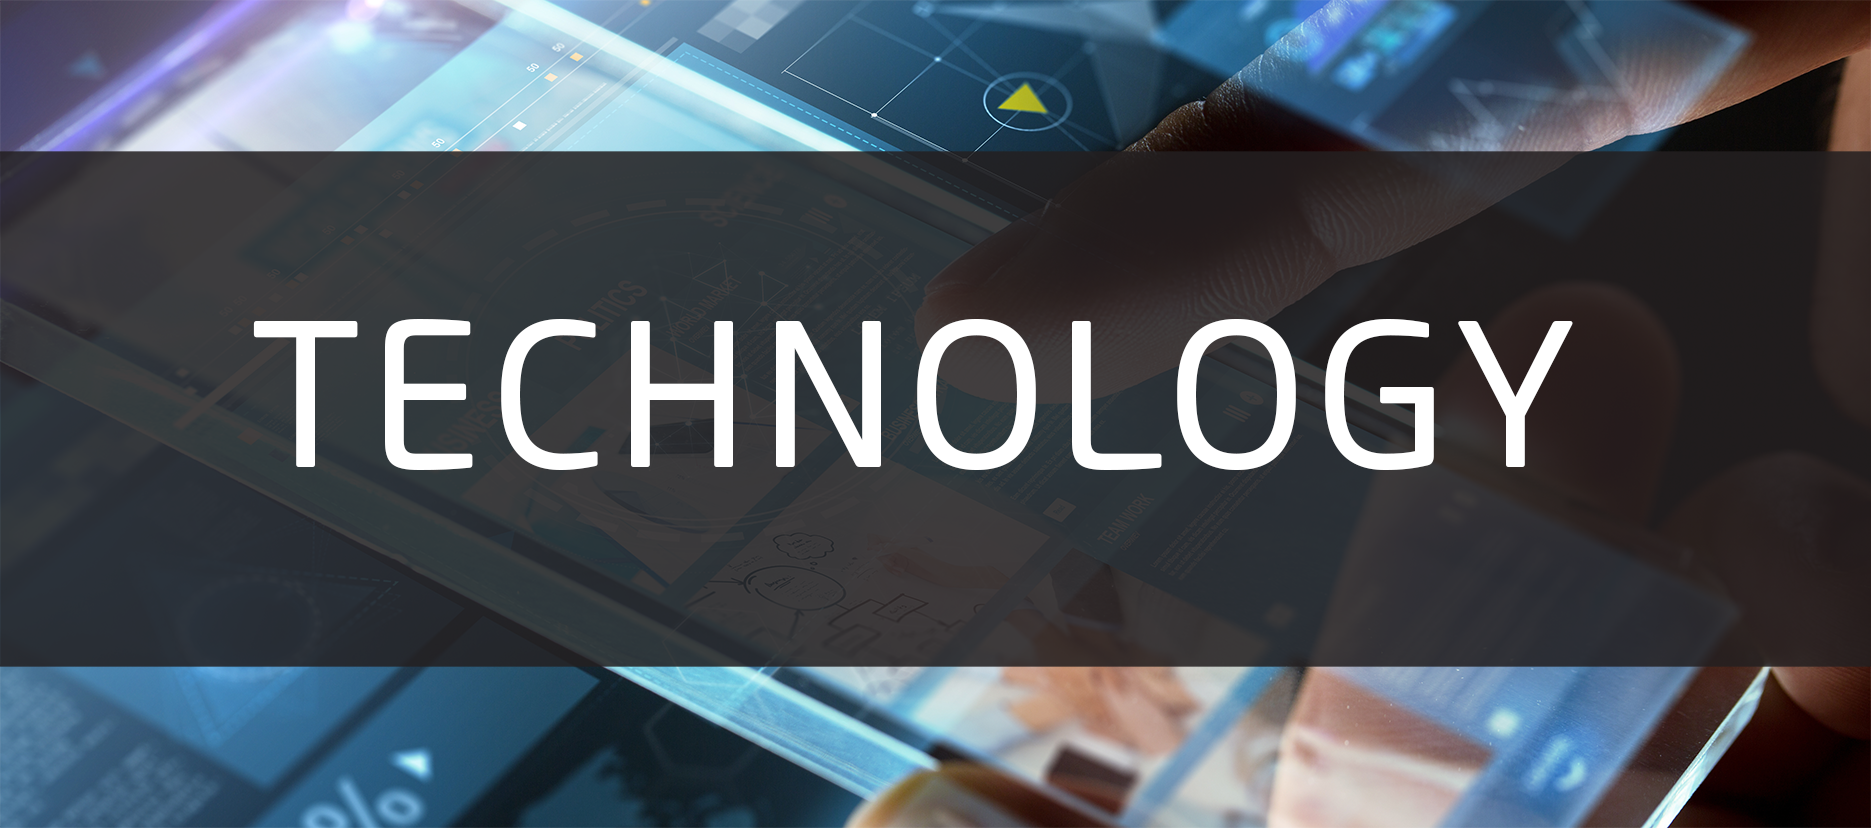 Technology-MobileApps